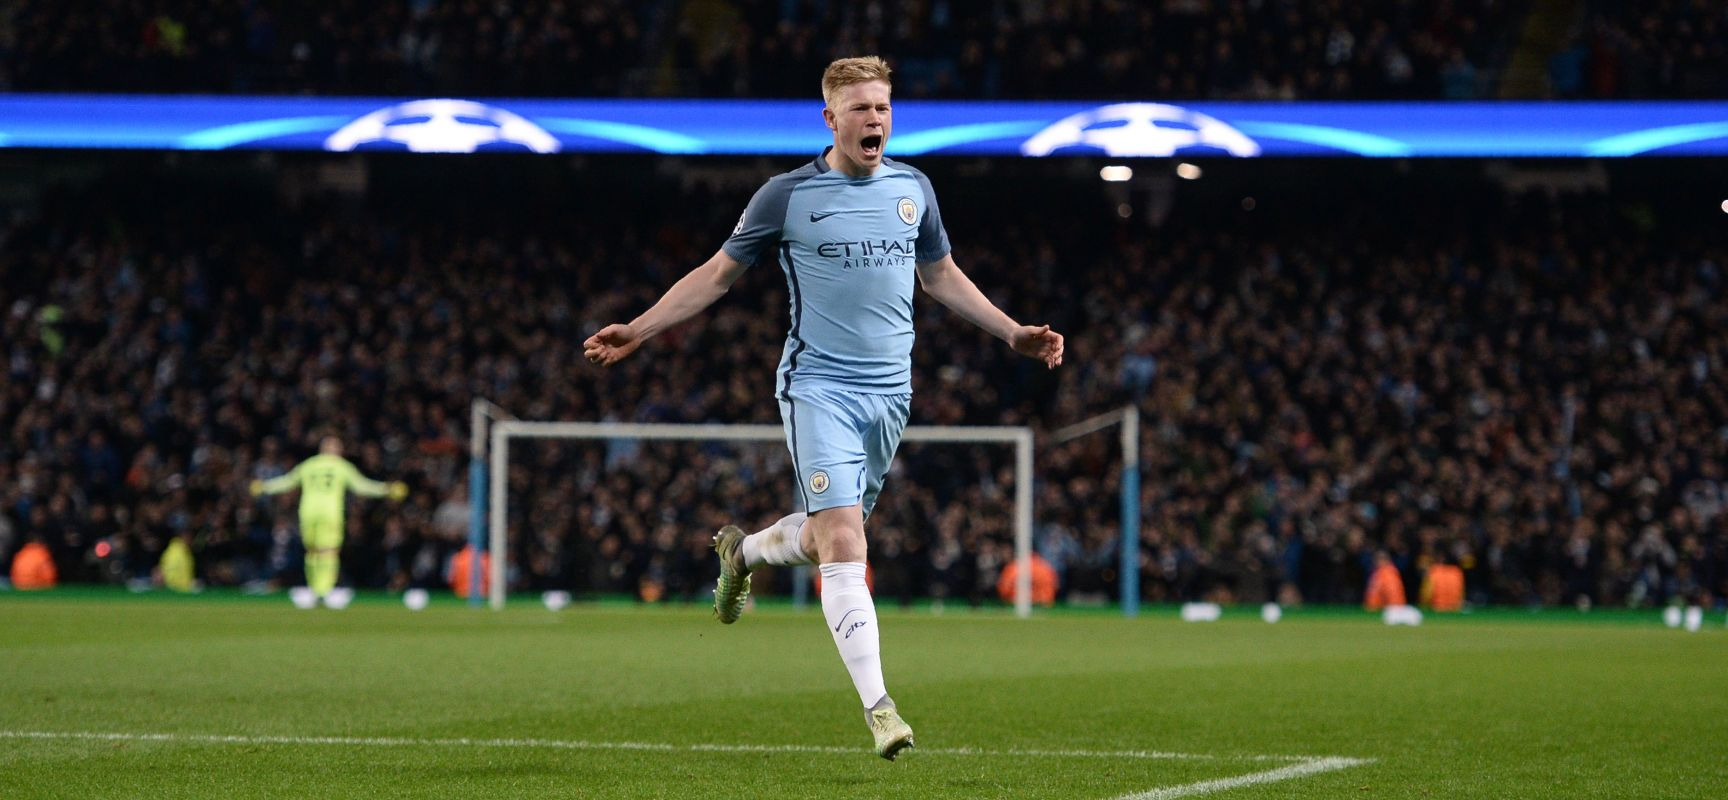 Kevin De Bruyne celebrates his sensational goal giving City a 2-1 lead over Barcelona.